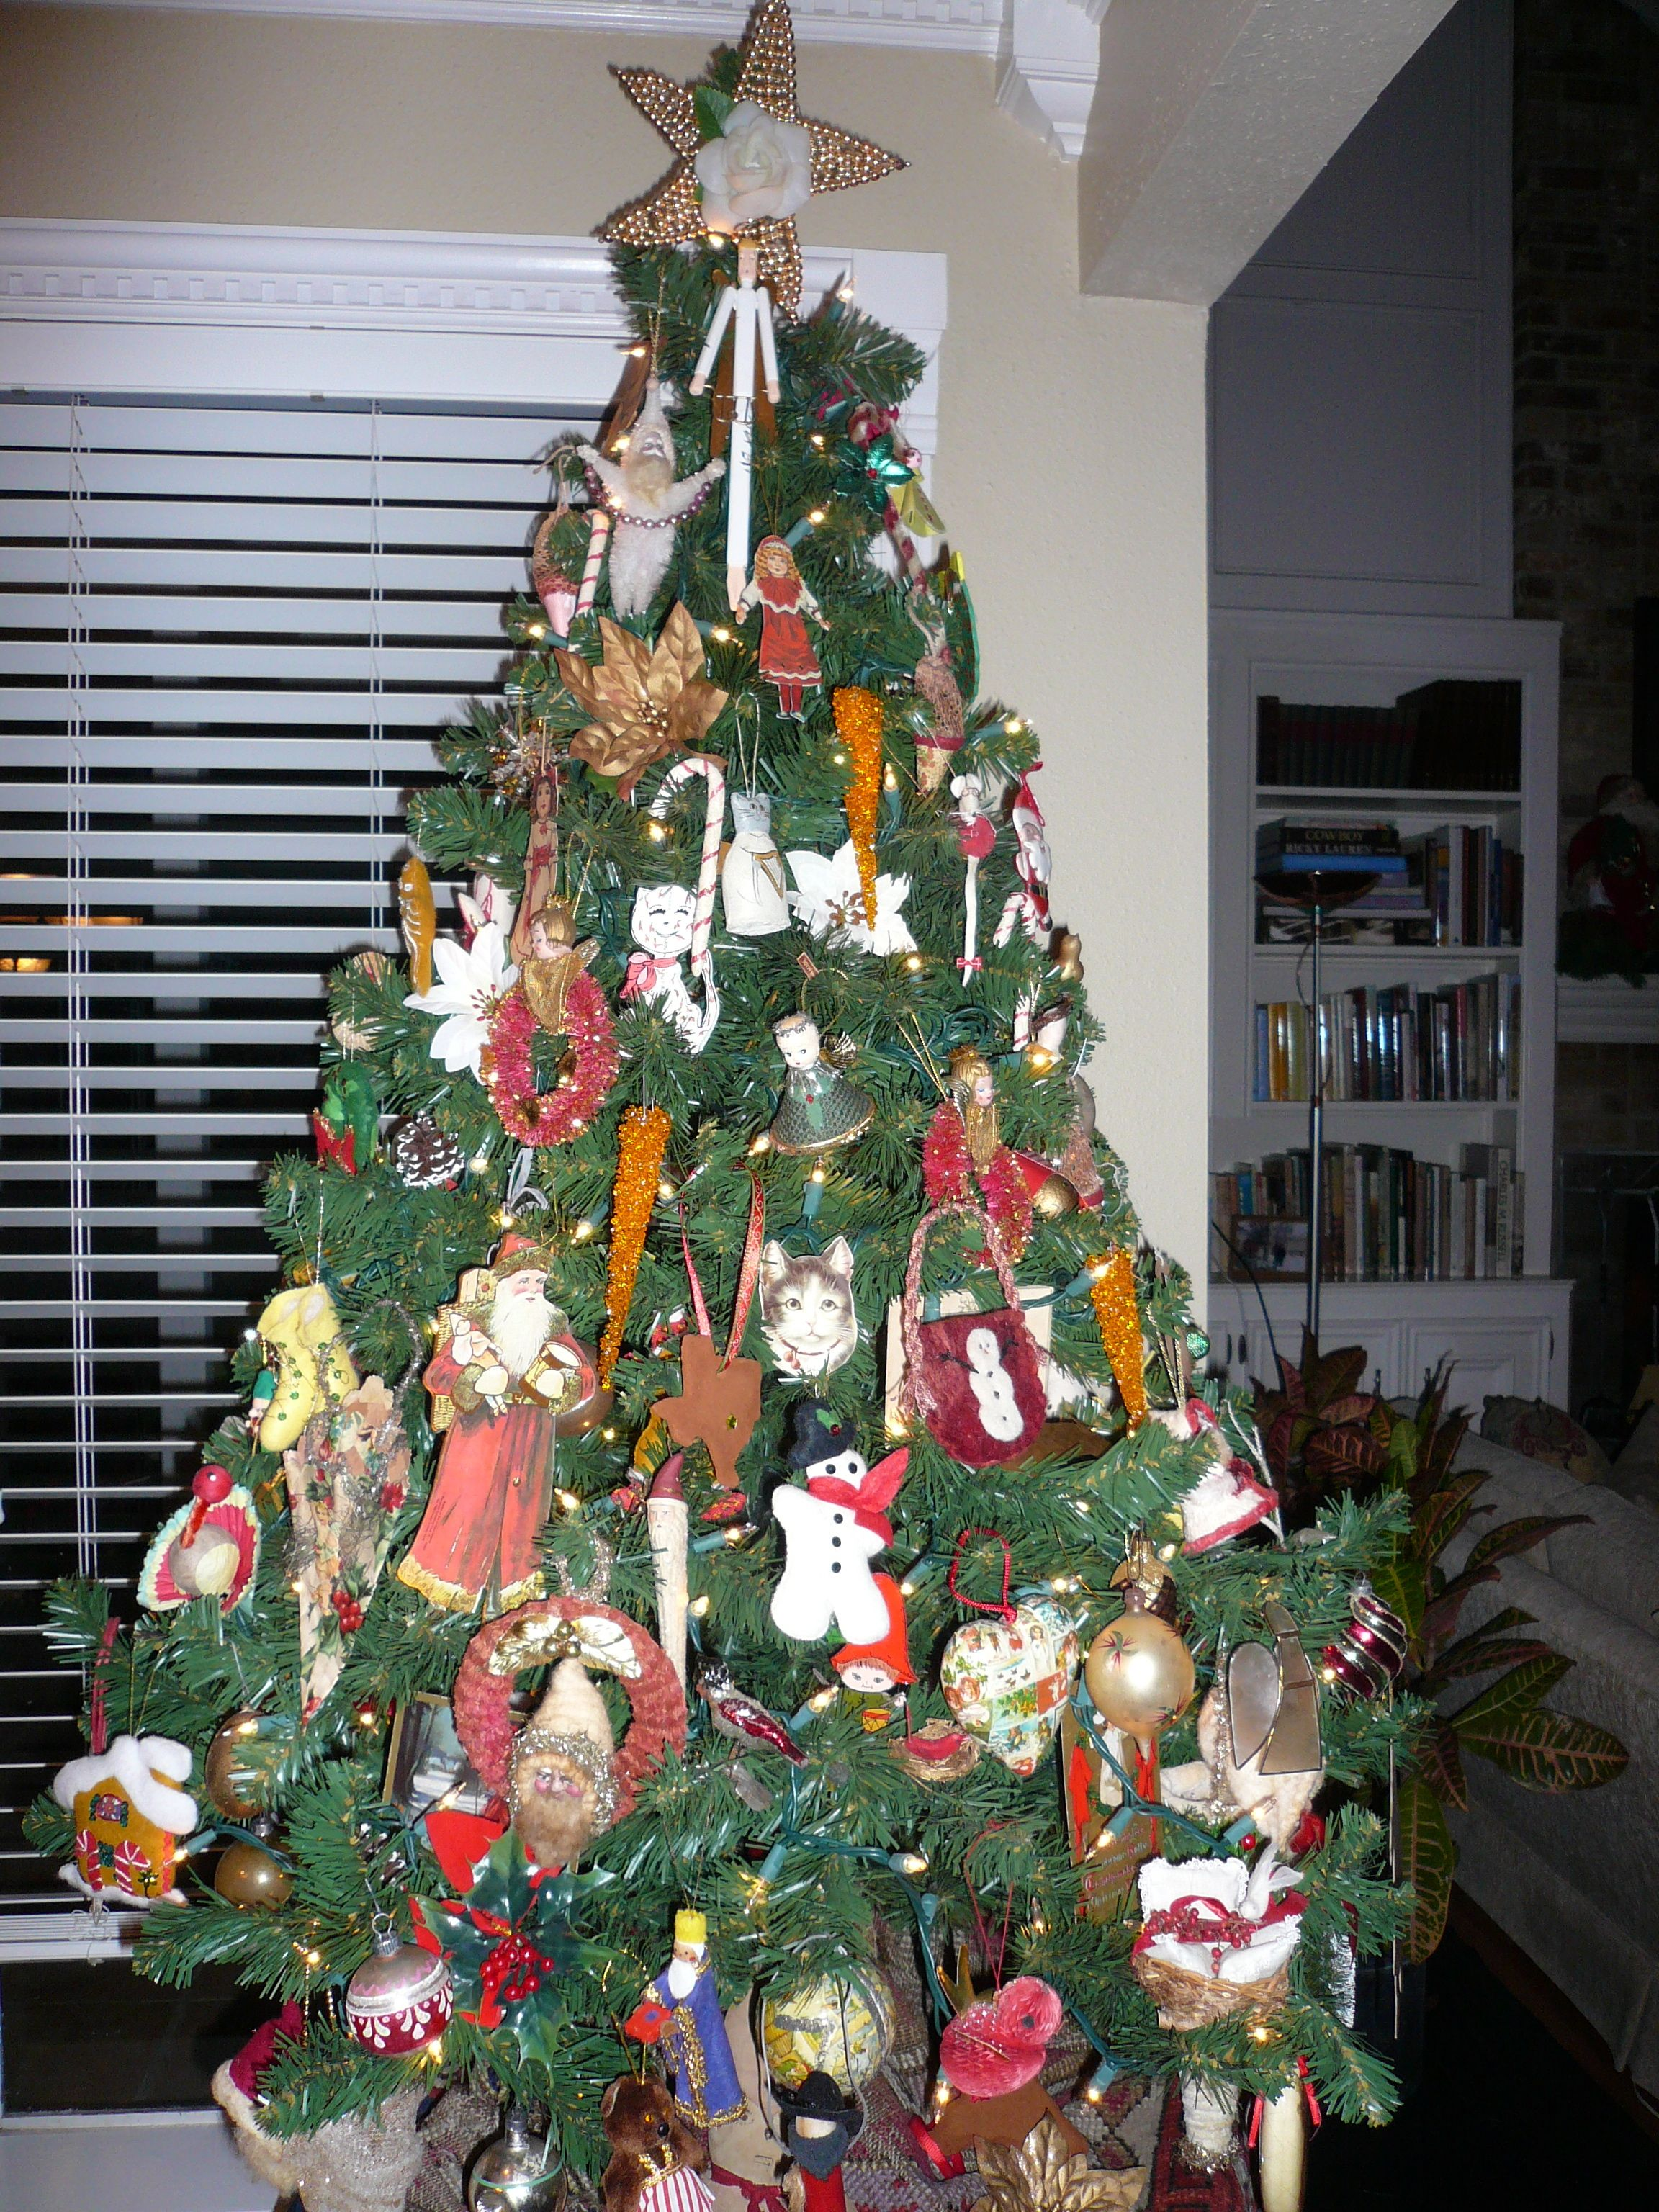 Permalink to Inspirational Christmas Tree Decorated with Vintage ornaments